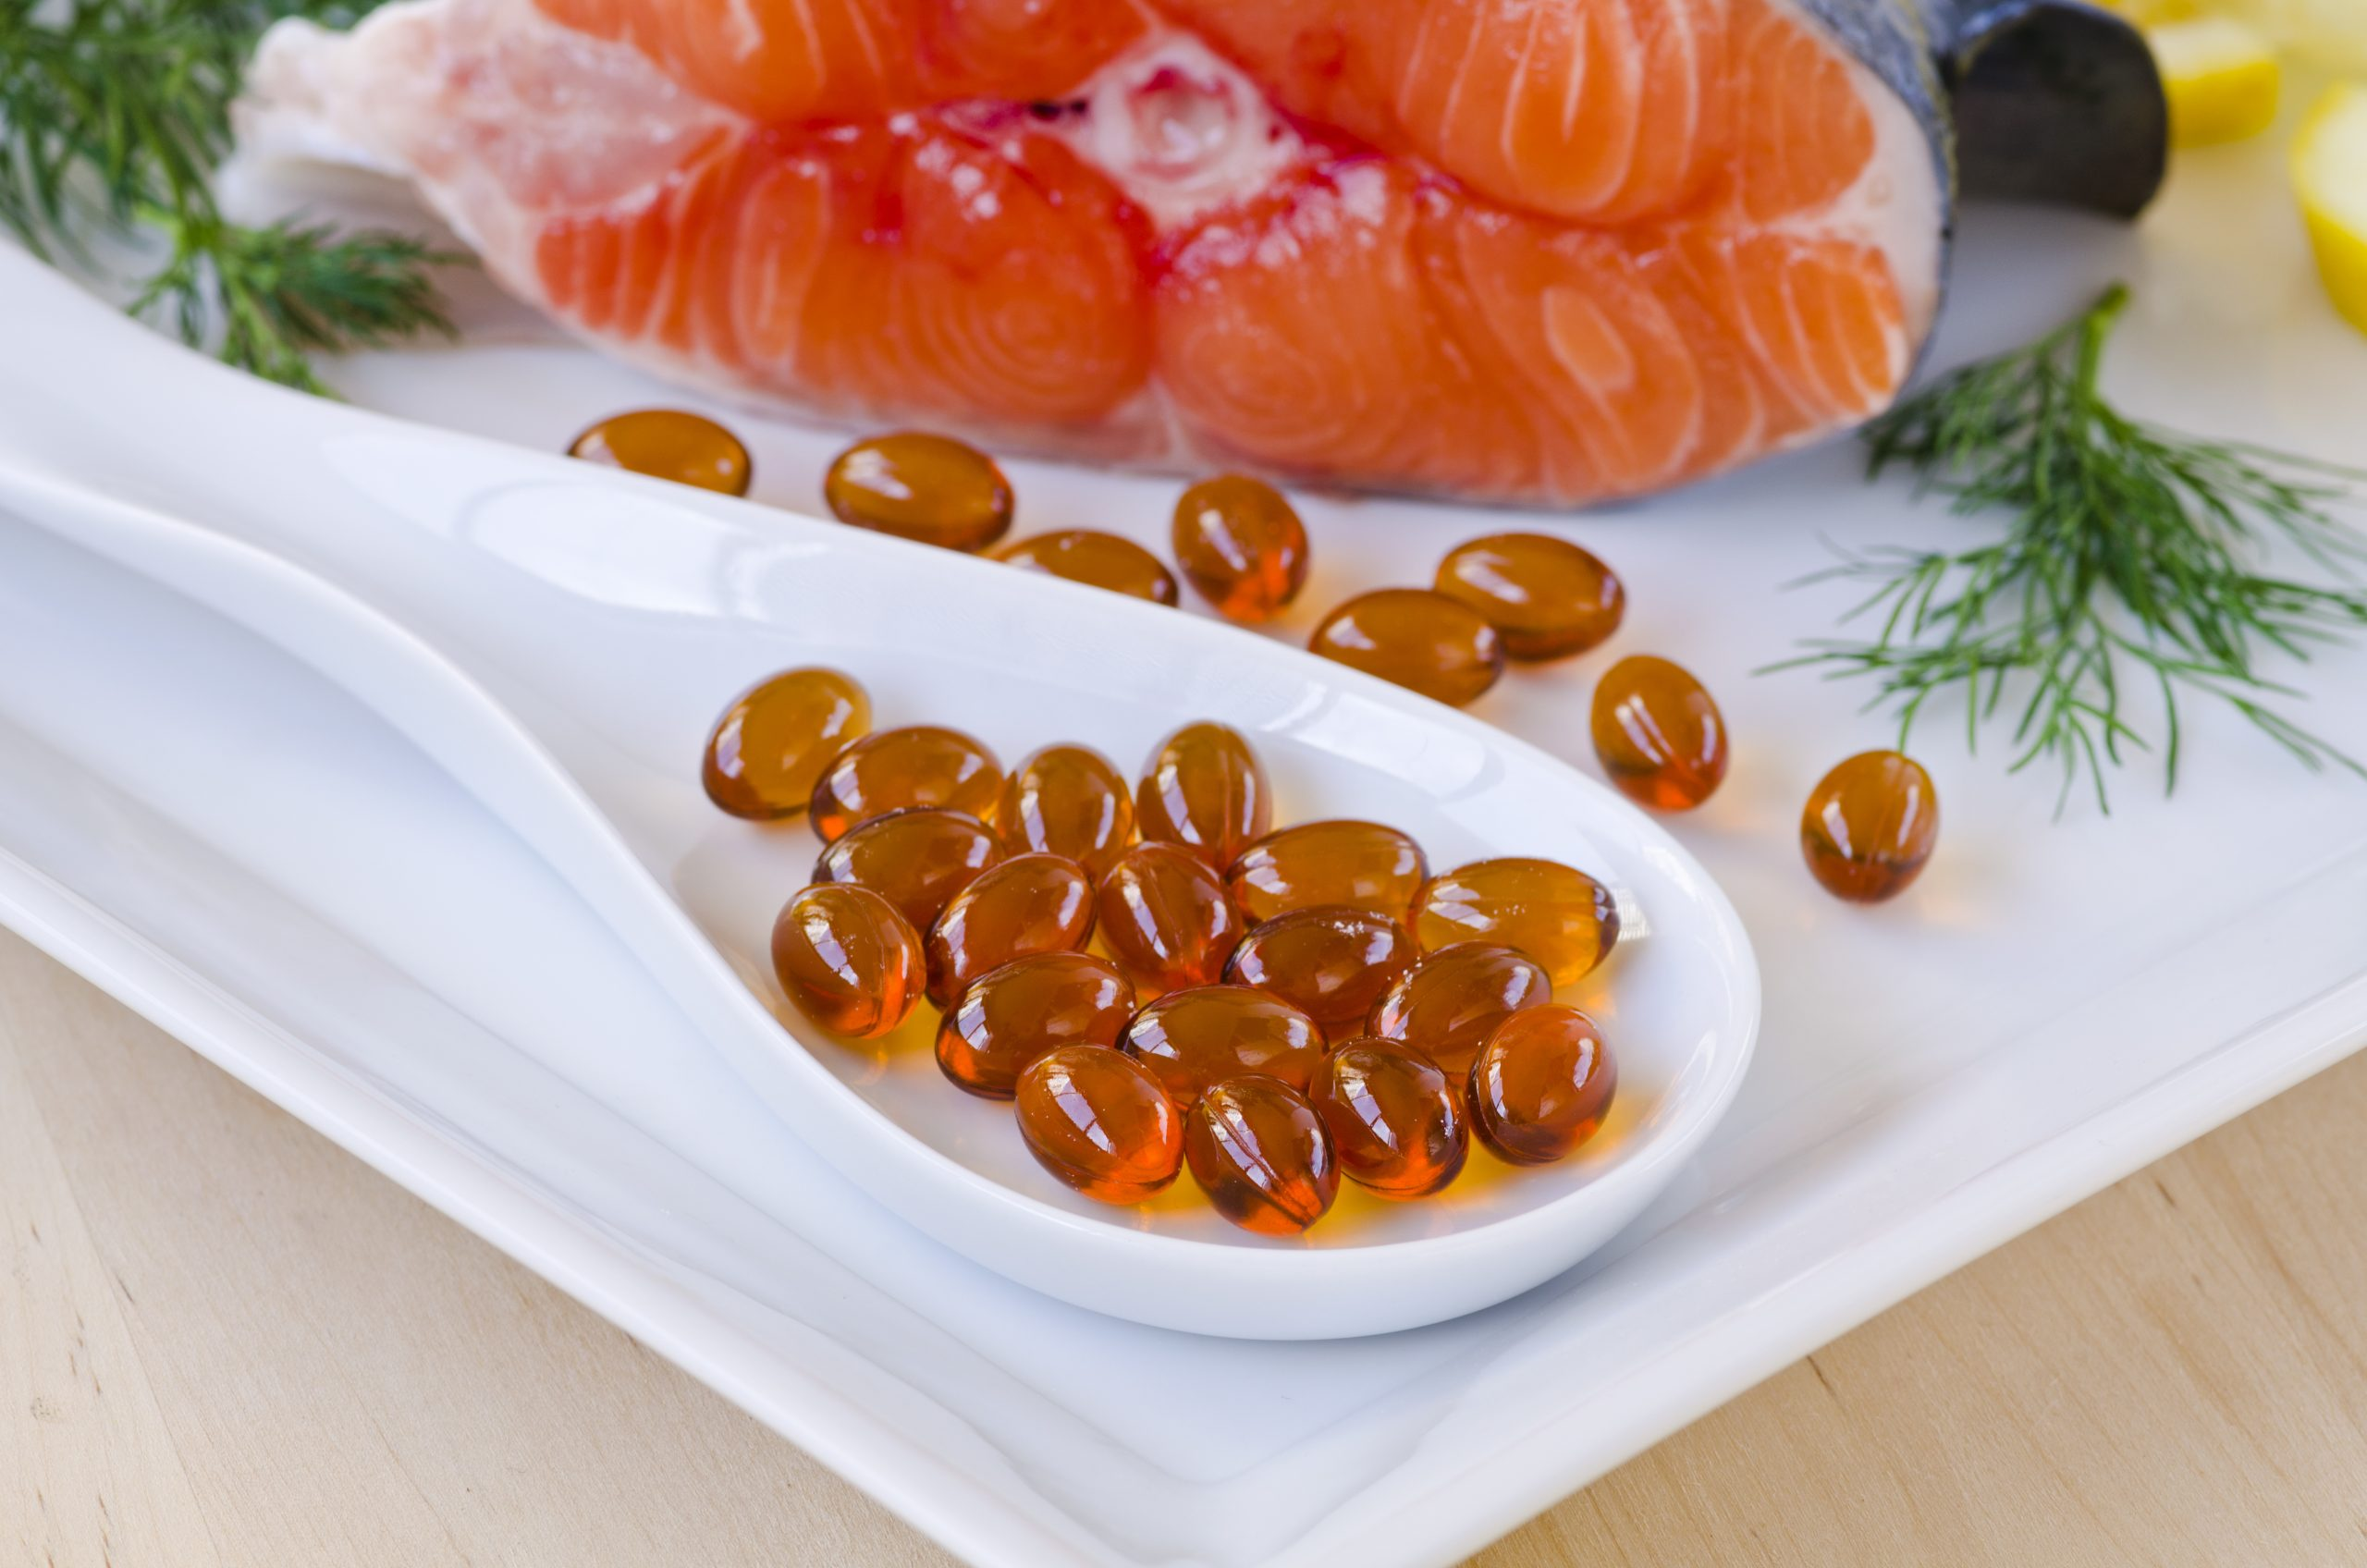 Best Omega-3 Supplement 2021: Shopping Guide & Review